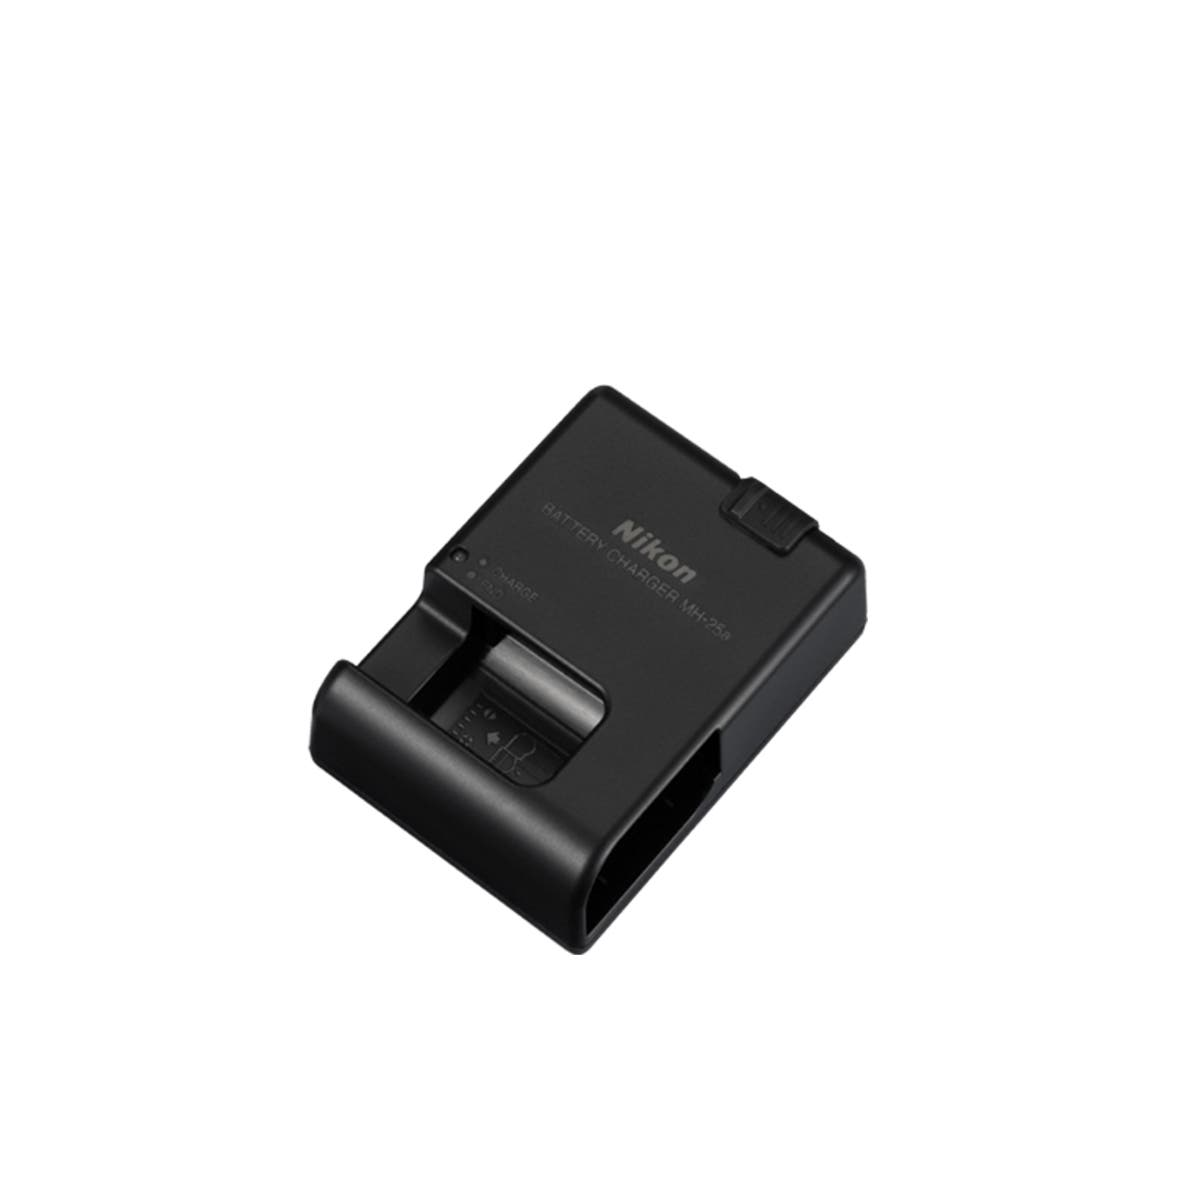 MH-25A Battery Charger